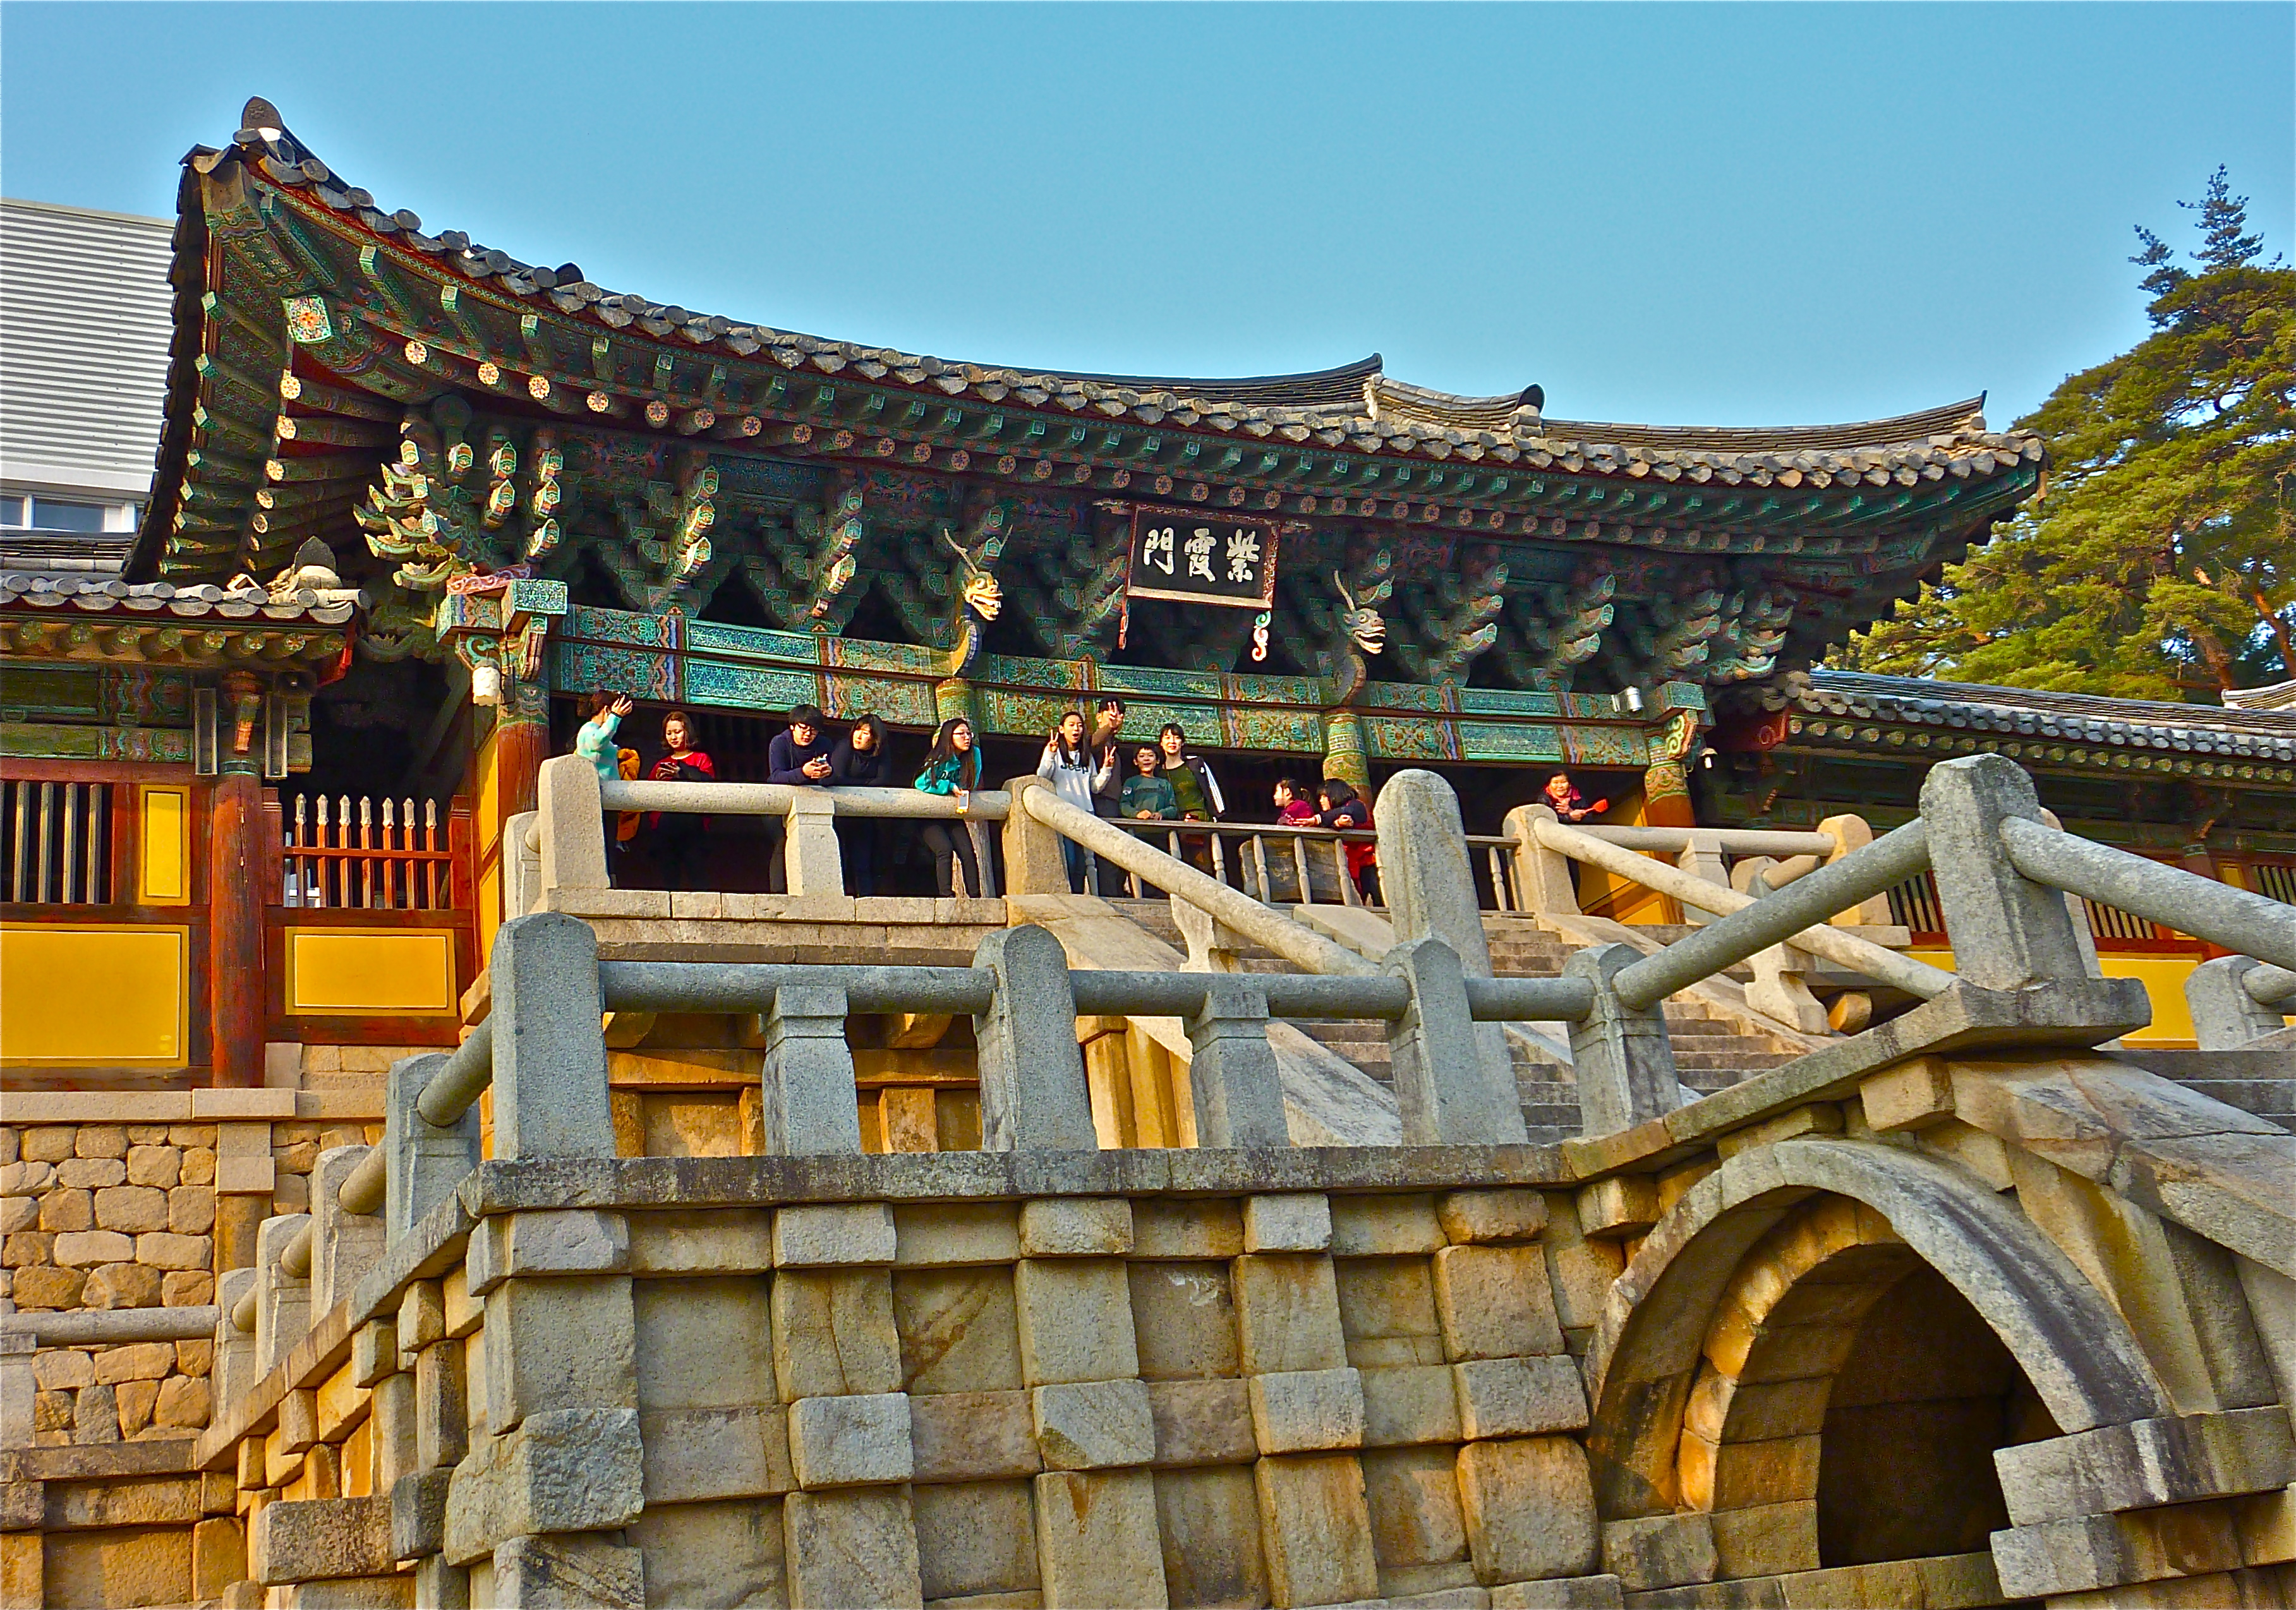 The Temple Is Considered A Masterpiece Of Golden Age Buddhist Art In Silla Kingdom And Currently An Important Jogye Order Korean